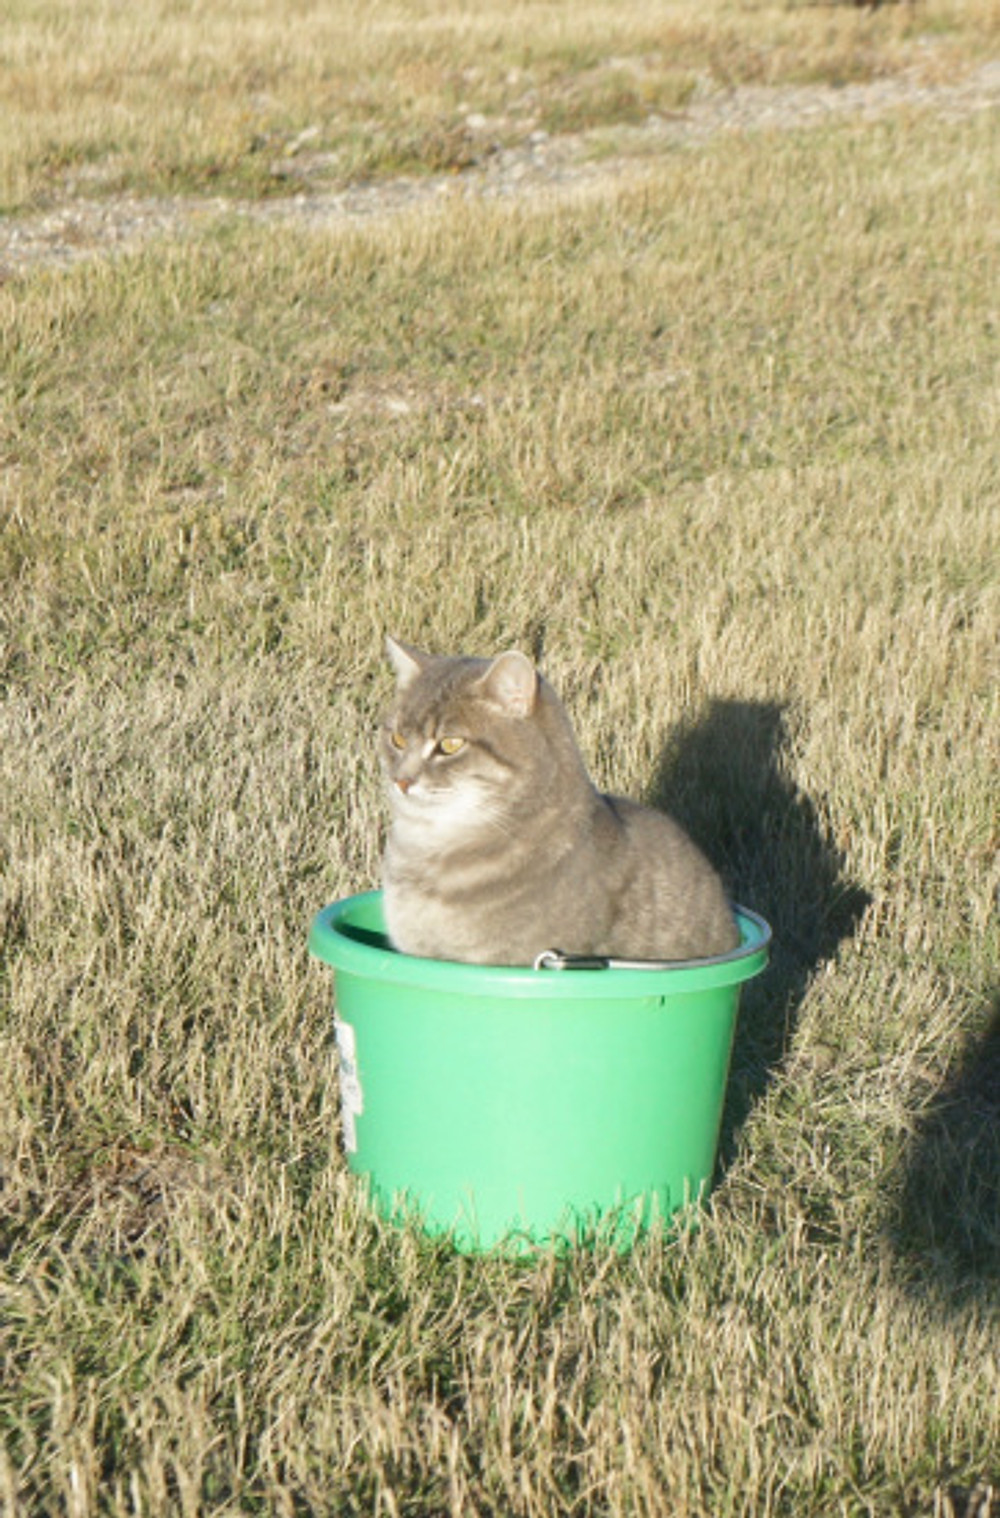 One of my helpers... the kitty in the feed bucket!